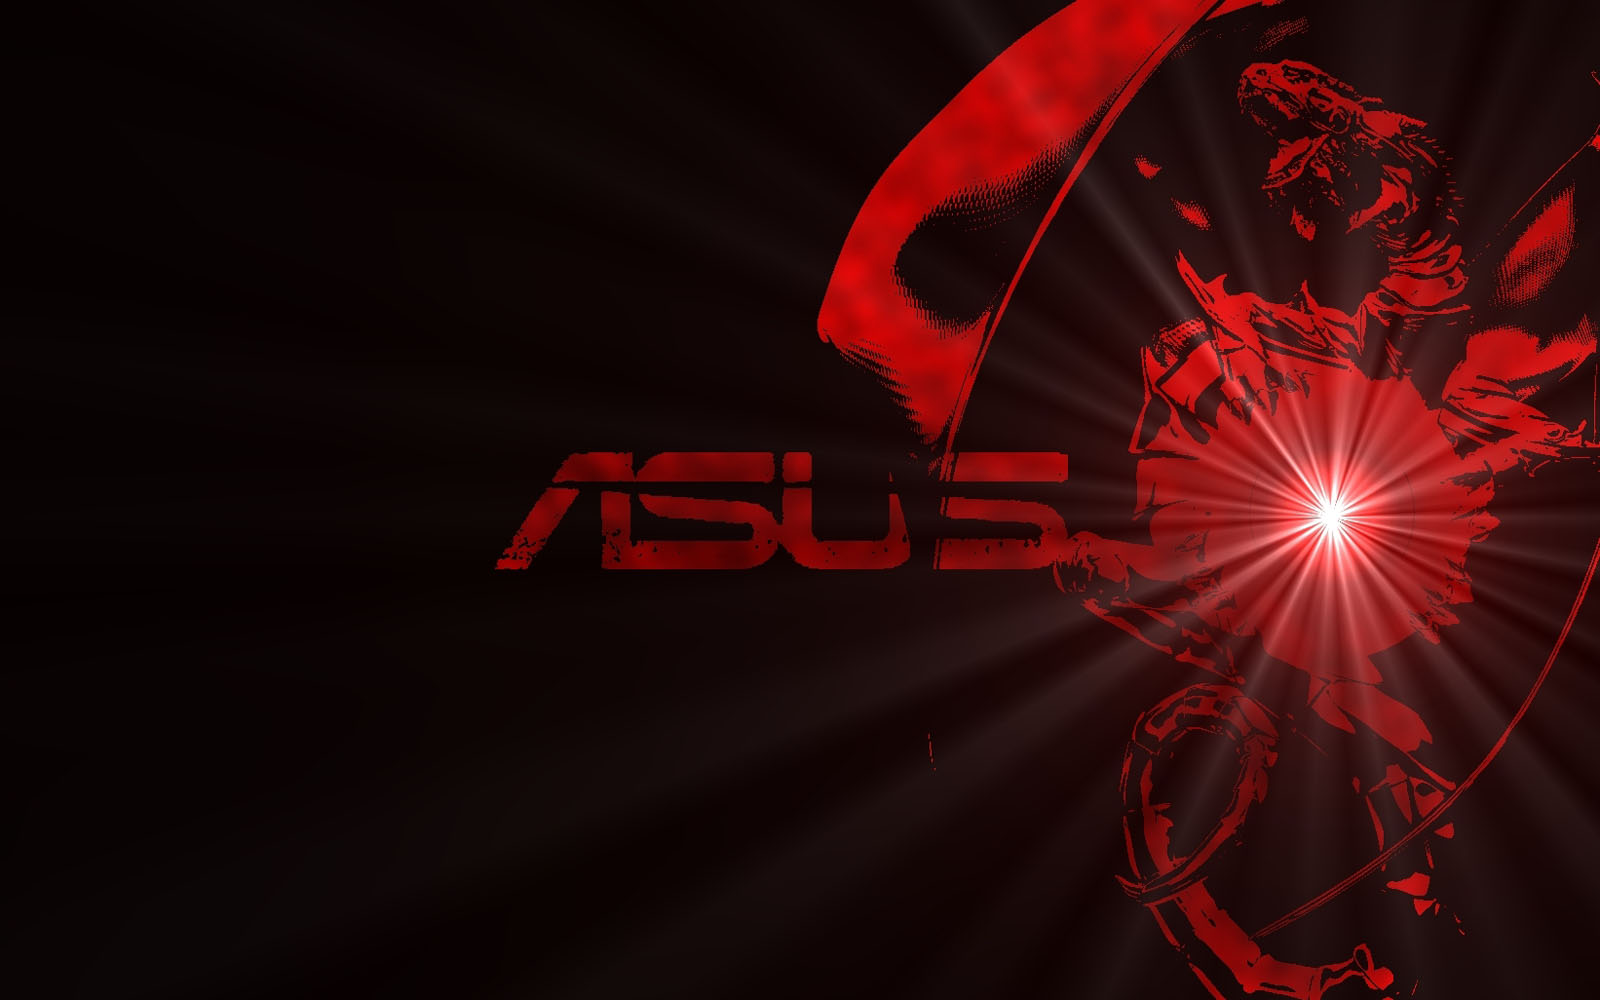 wallpapers: Asus Wallpapers